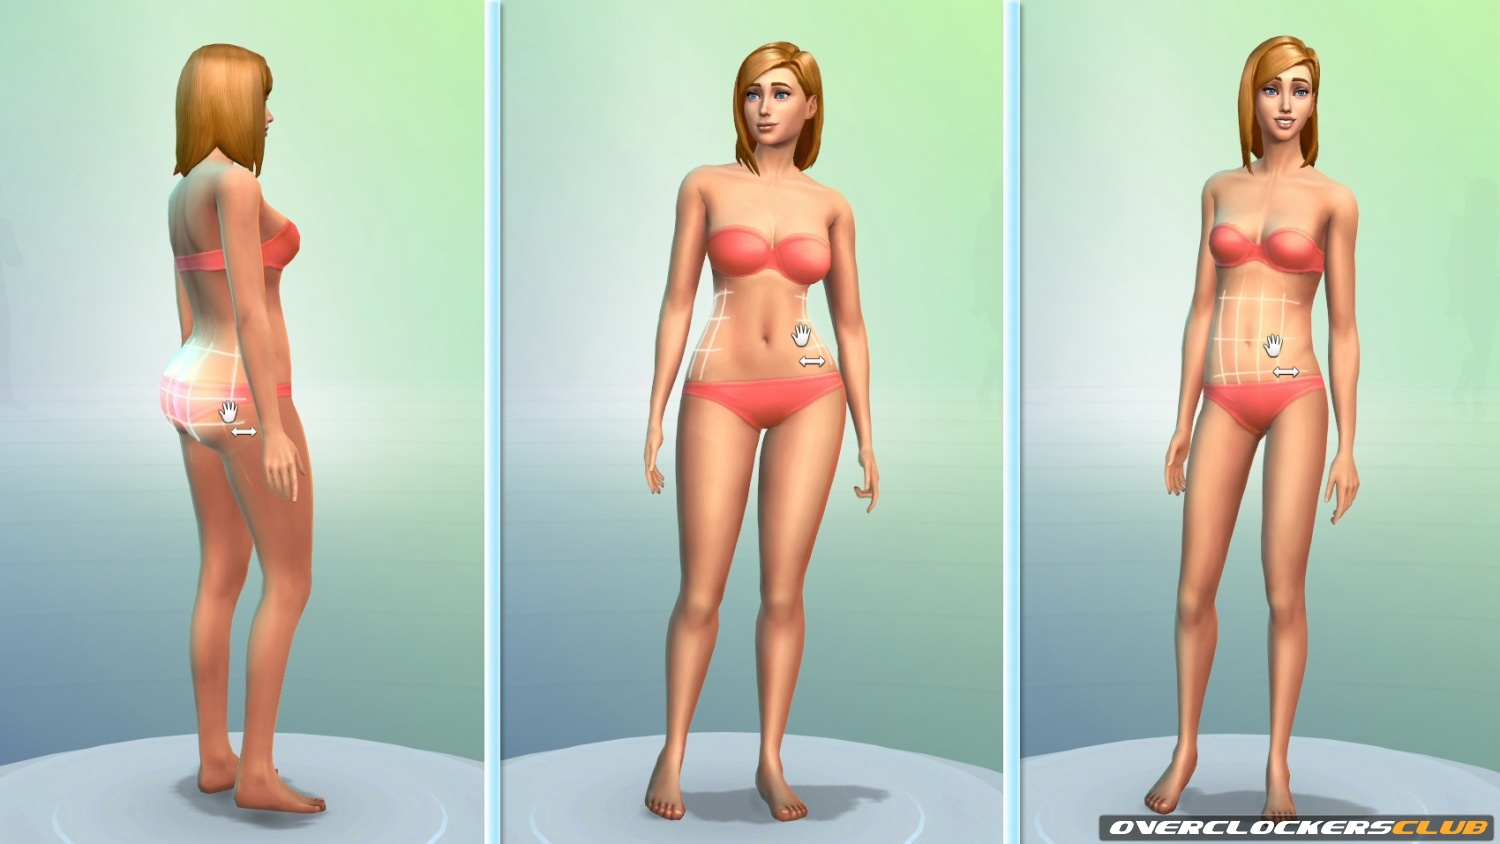 Character Customization in The Sims 4 is Insanely Powerful